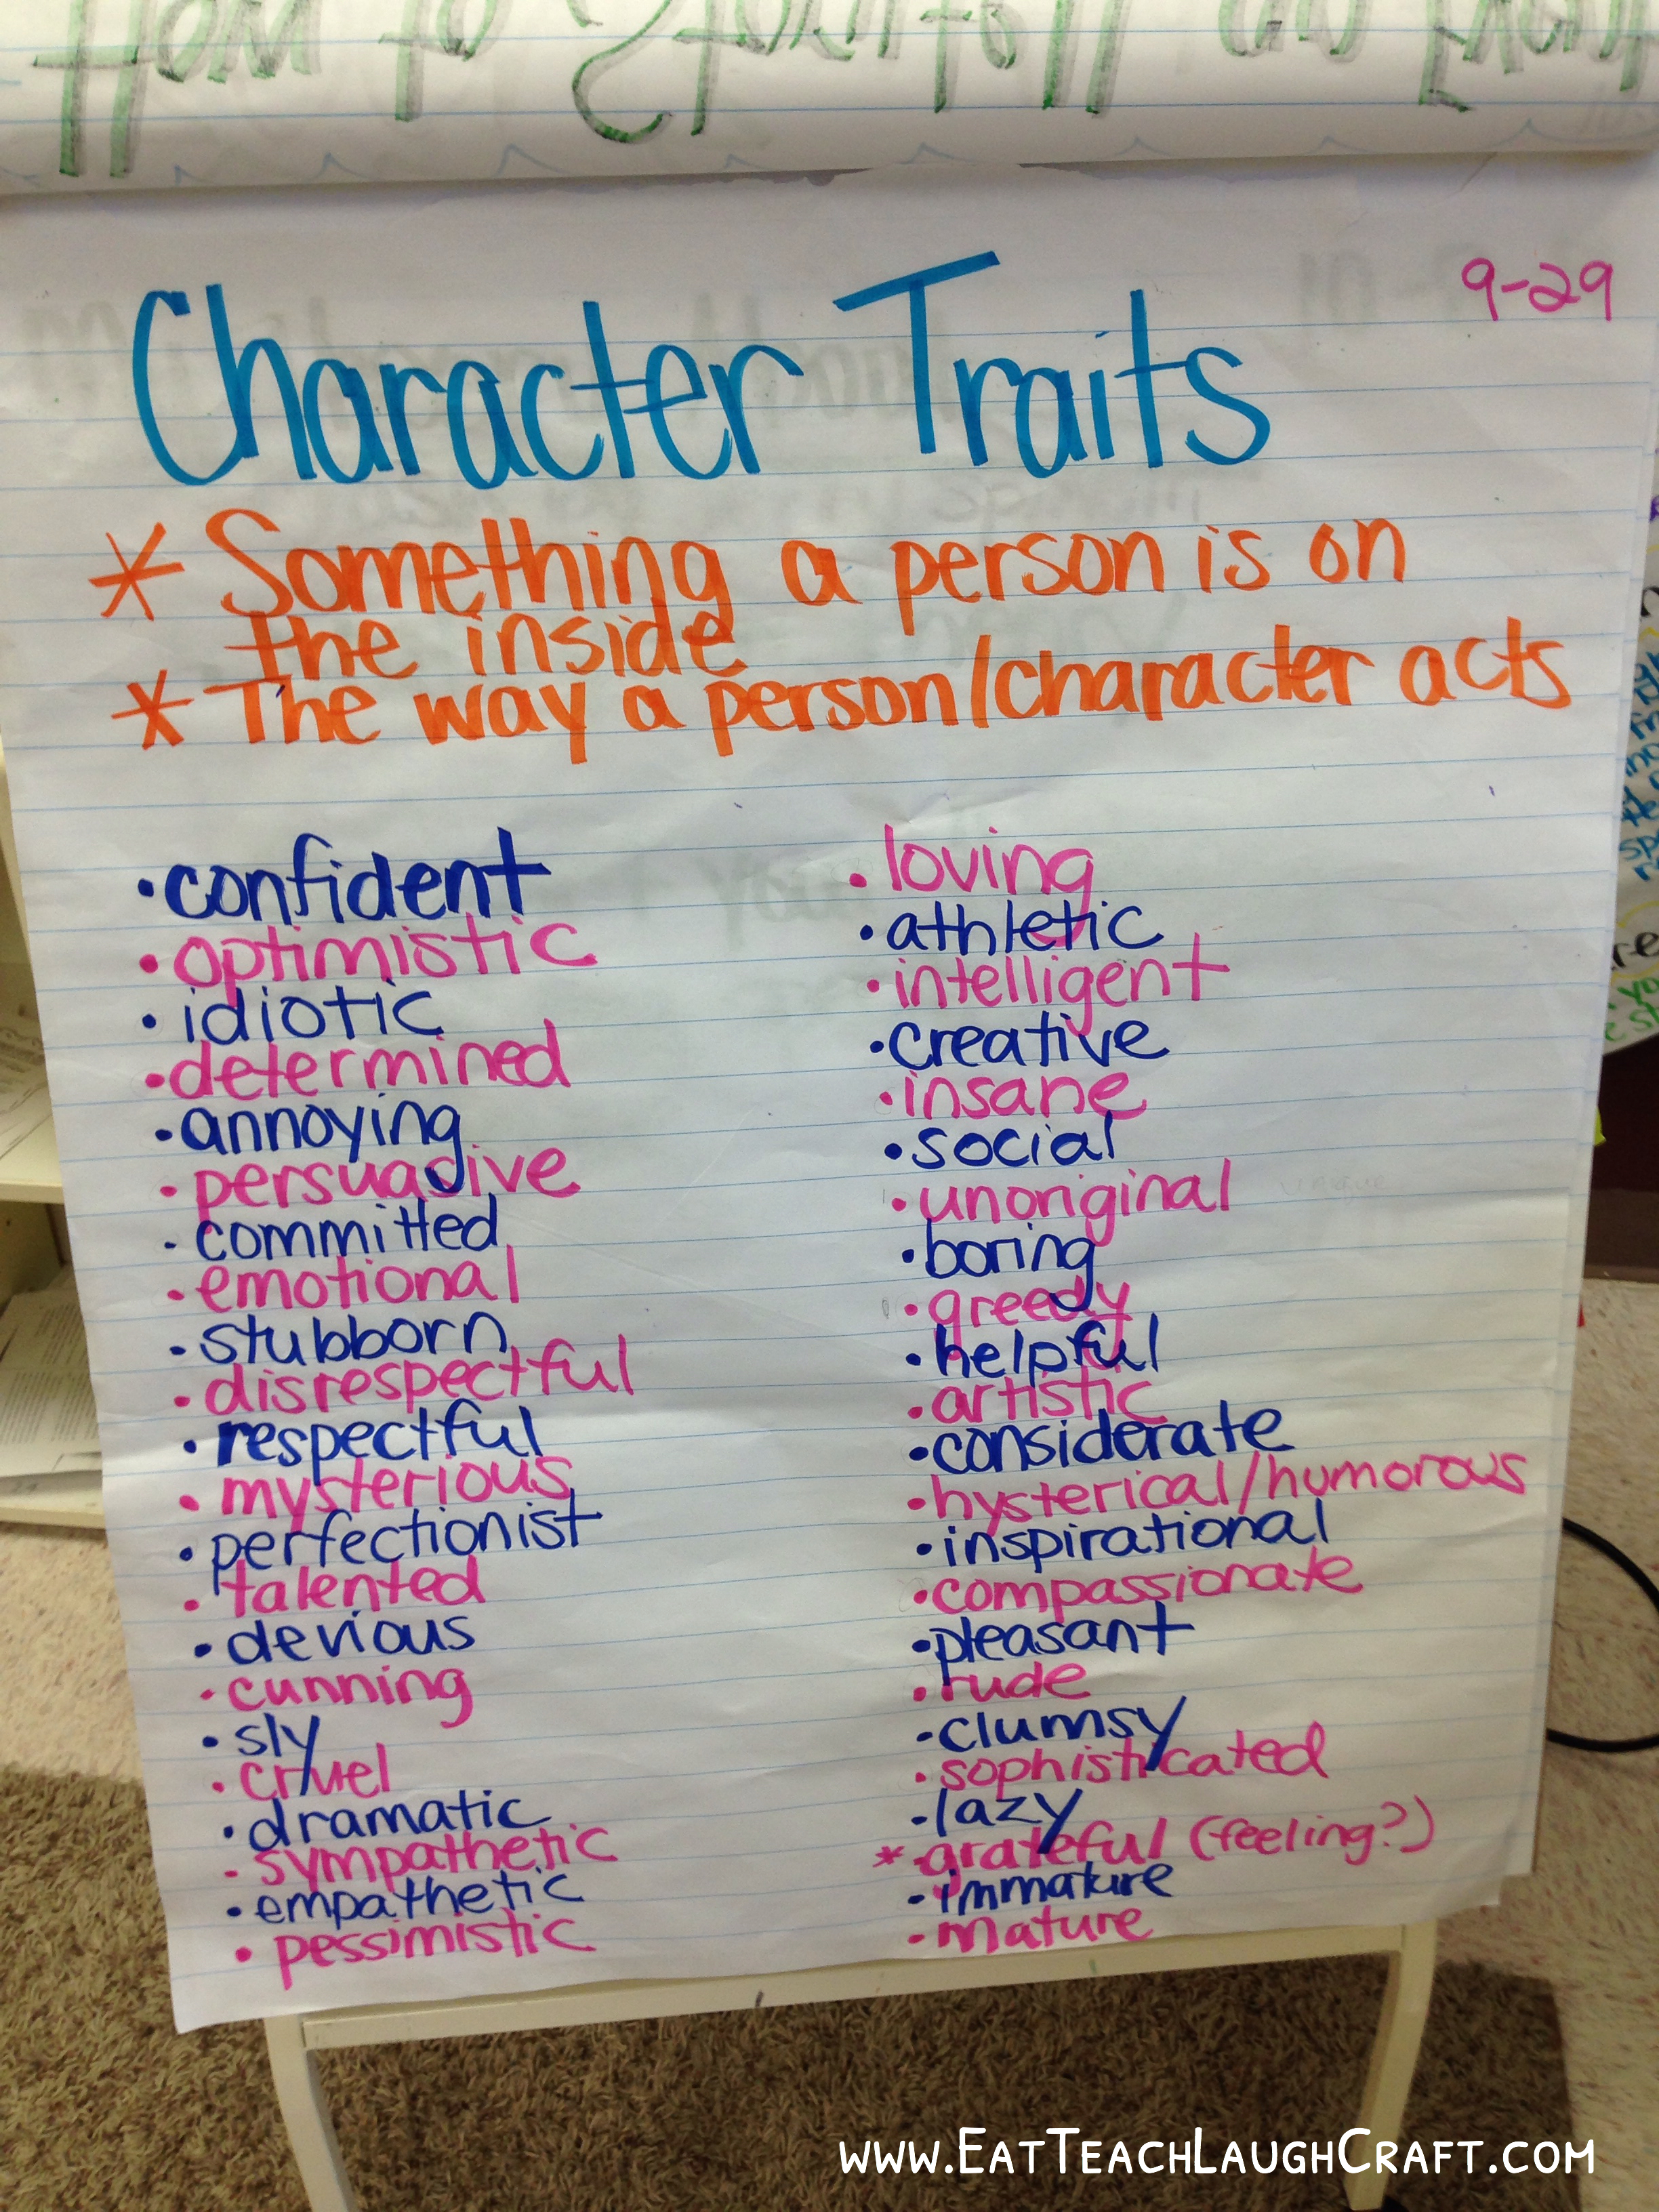 Categorizing Character Traits In A 5th Grade Class